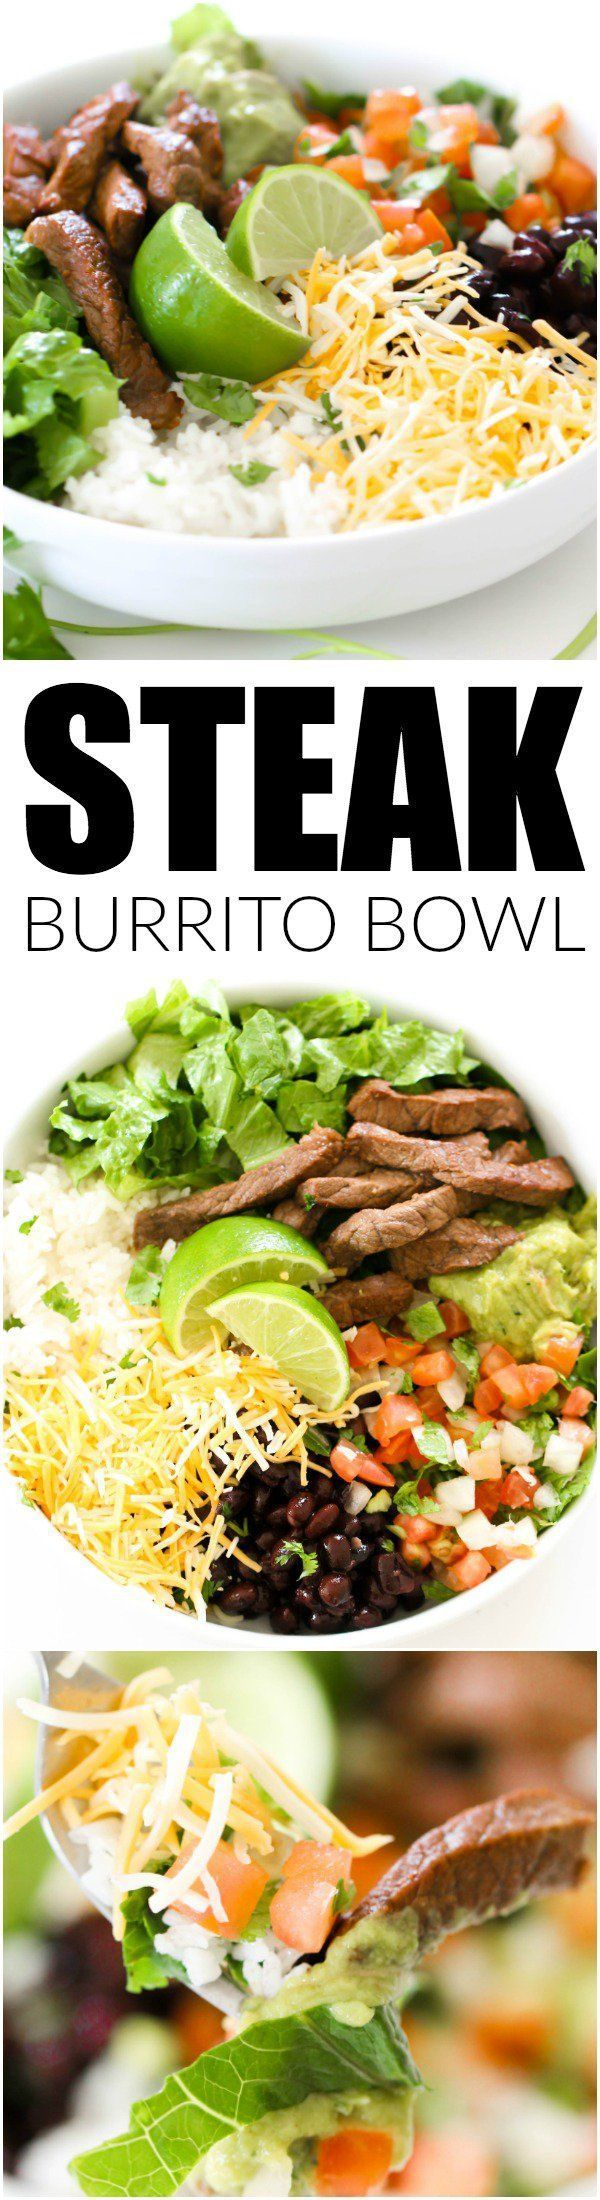 Steak Burrito Bowl from http://SixSistersStuff.com | Family Meal Ideas | Dinner Recipes | Beef Recipes | Mexican Food Ideas | Healthy Lunch